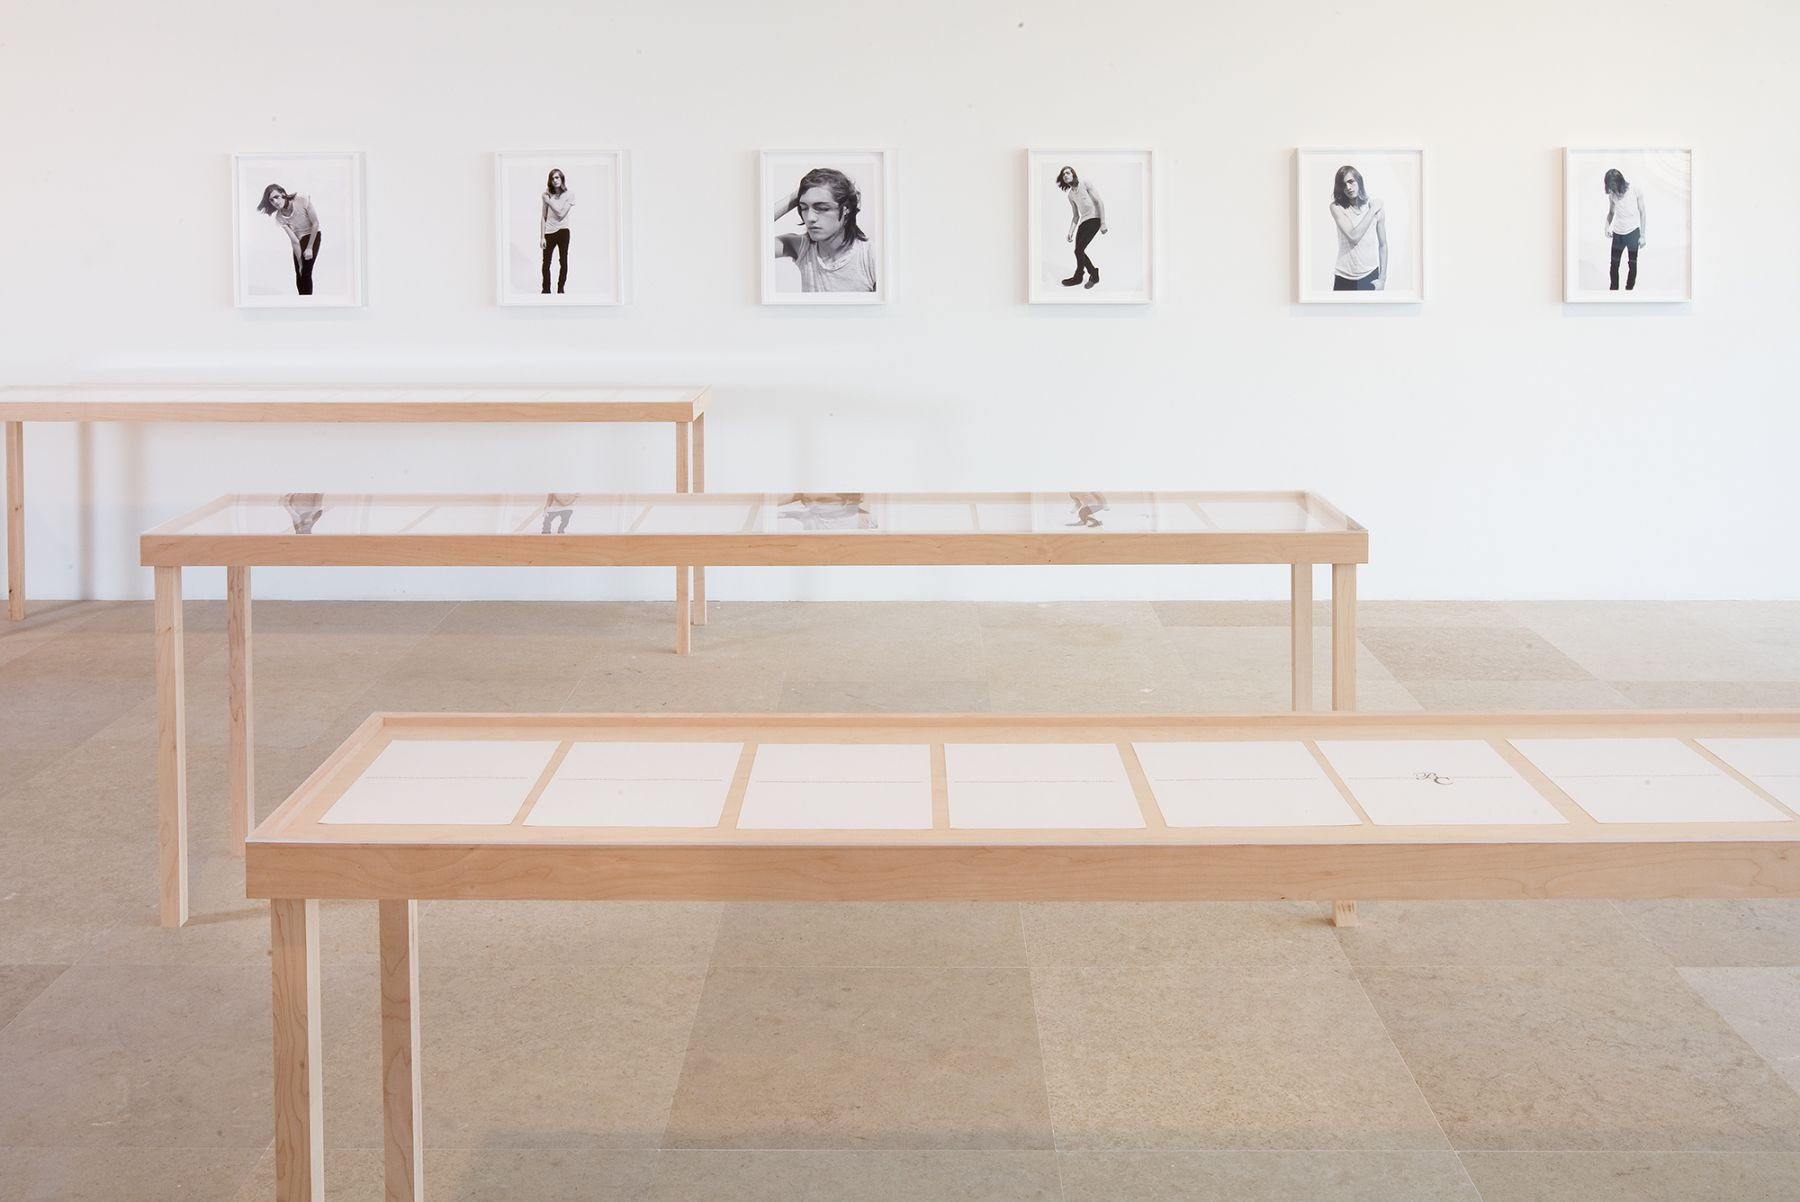 Installation view, The Complete Poem, Greene Naftali, New York, 2009